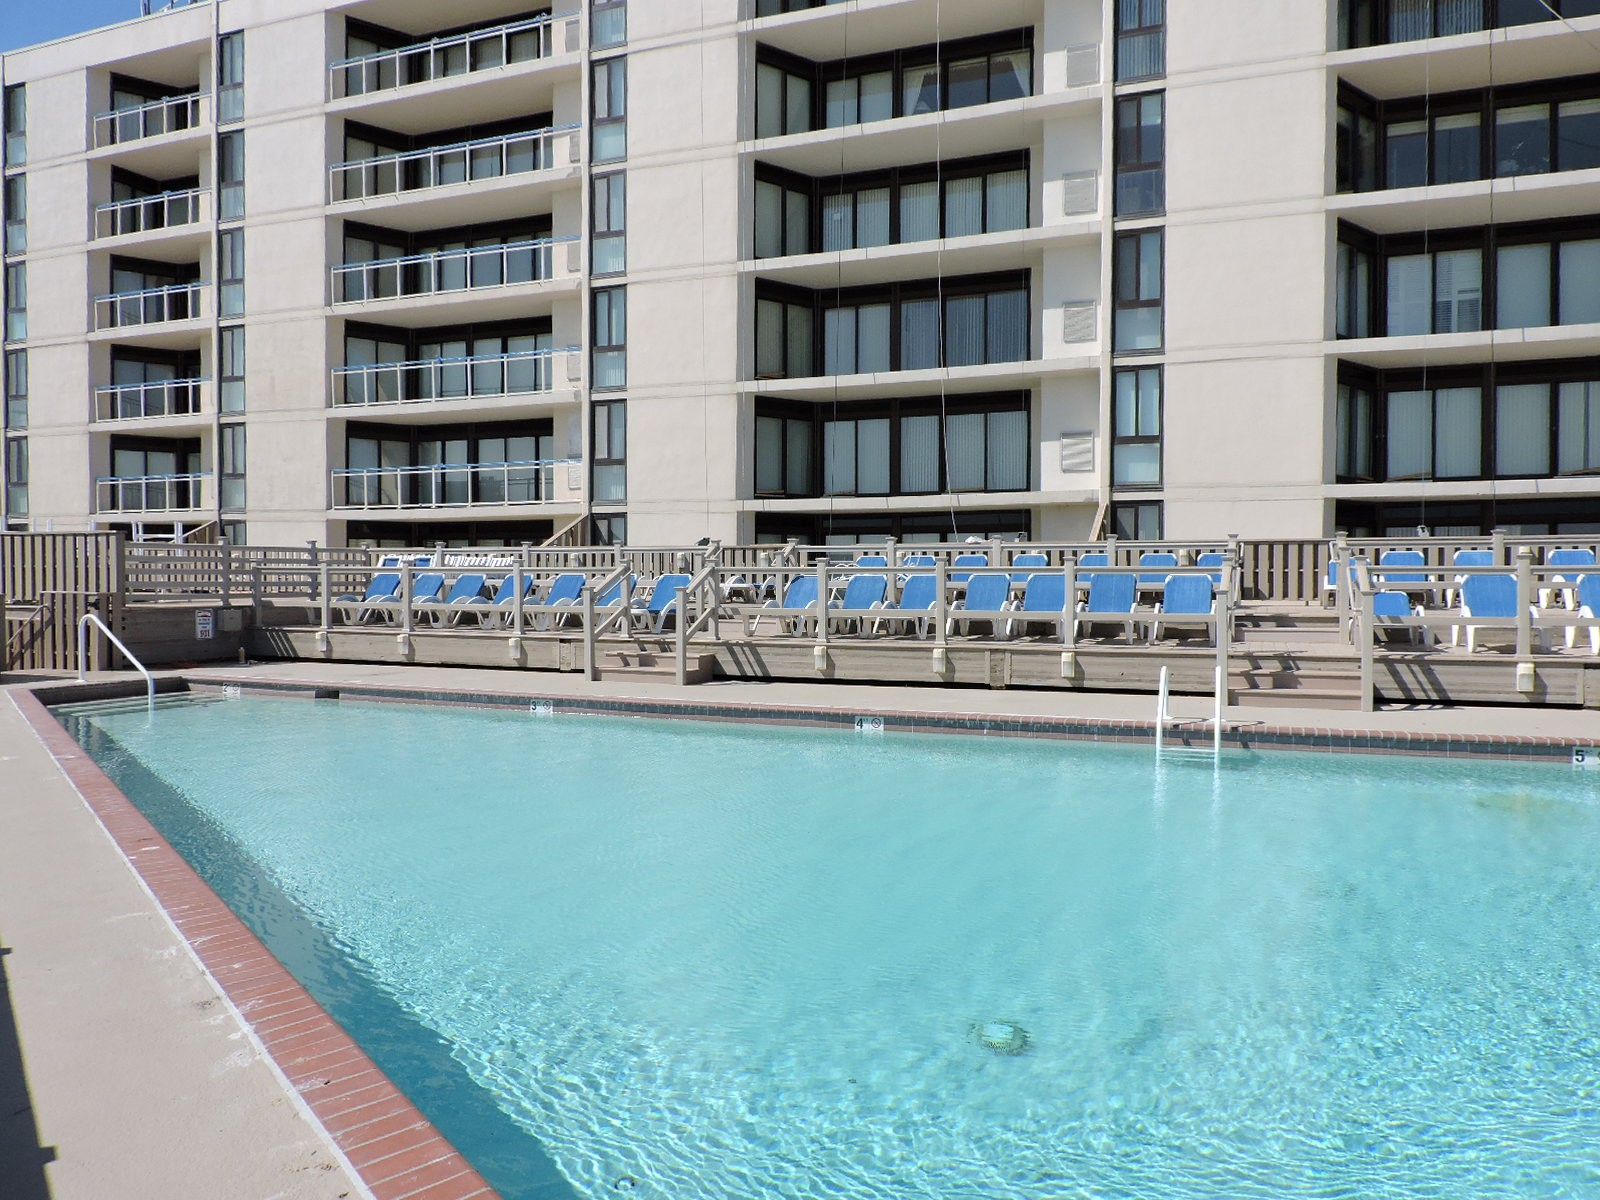 Condominium for Sale at Ocean Plaza 2700 Atlantic Ave #202 Longport, 08403 United States